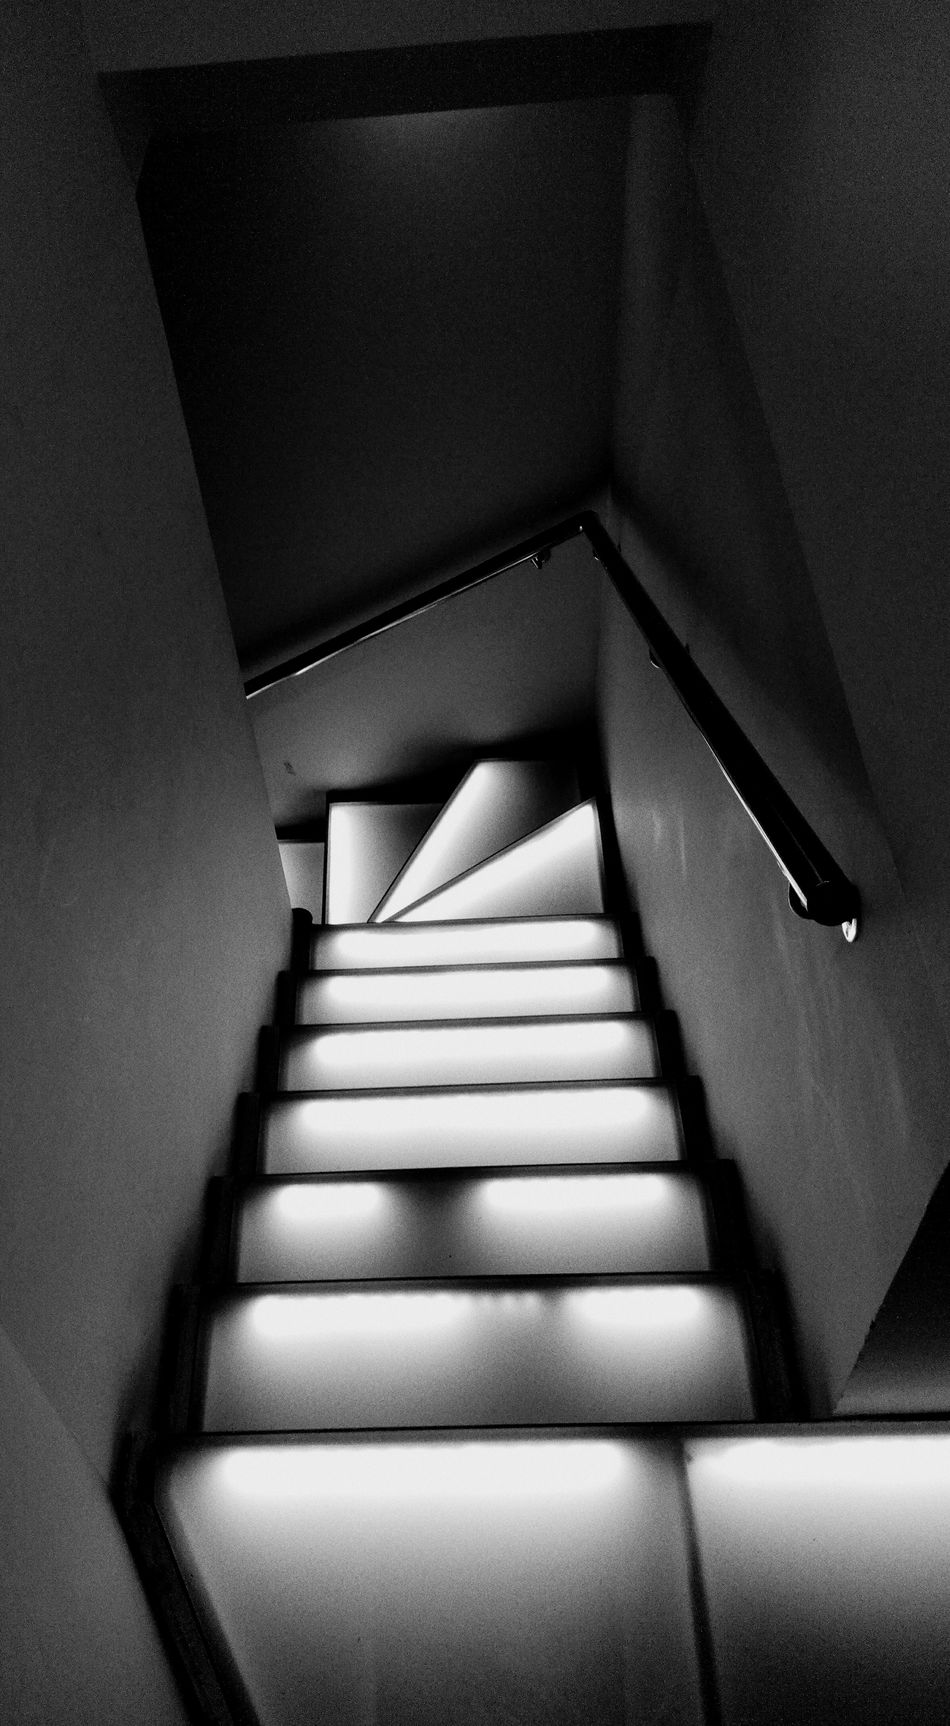 Light And Shadow of the Mysterious Stairs in Monochrome Blackandwhite • Urban Geometry in Interior Design in Black And White • Geometric Shapes of Architectural Detail in Bnw • Geometric Design in EyeEm Best Shots - Black + White • Eye4black&white  • Geometric Abstraction and Simplicity in NEM Black&white • Learn & Shoot: Simplicity • Bnw_friday_eyeemchallenge • This Week On Eyeem • Black & White • EE_Daily: Black And White • Urban 4 Filter • Interior Design